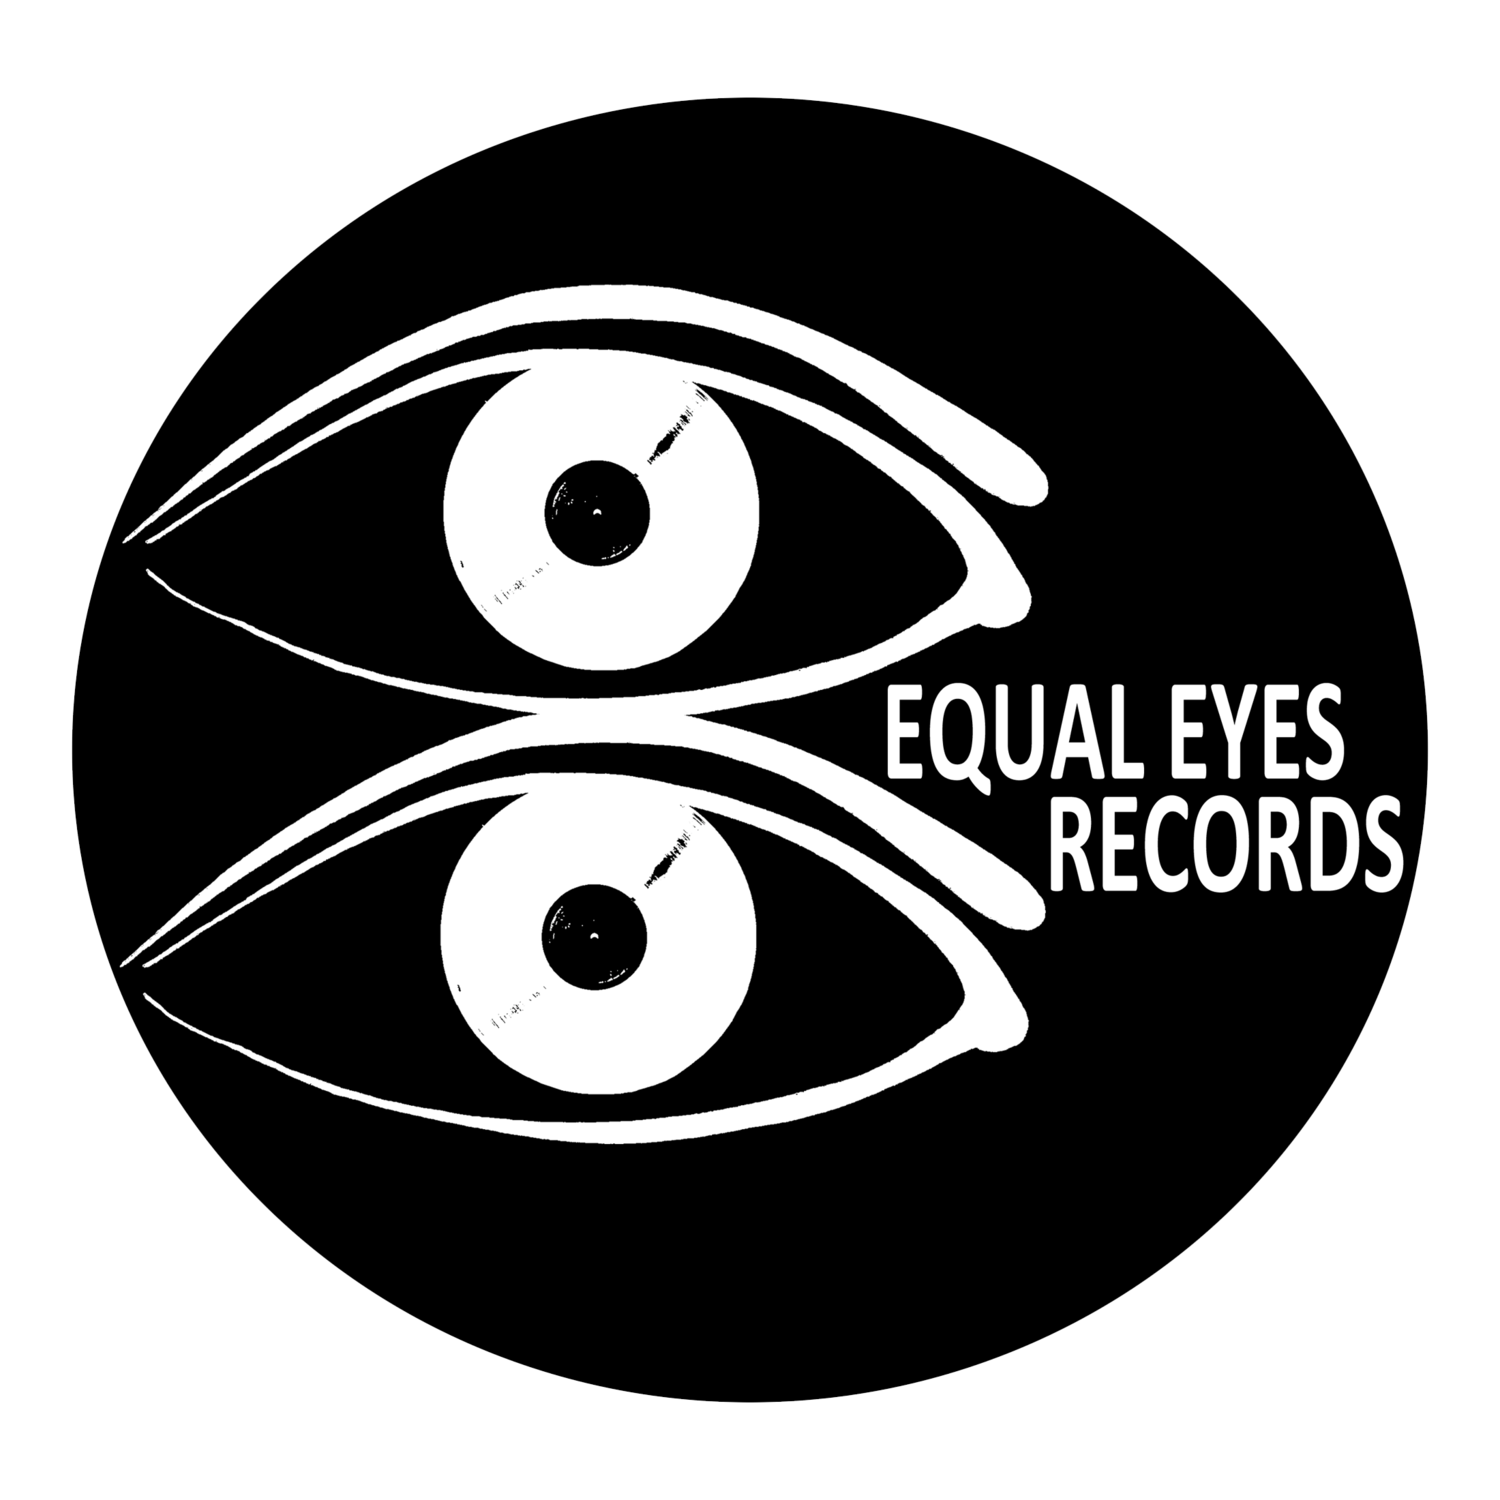 Equal Eyes Records